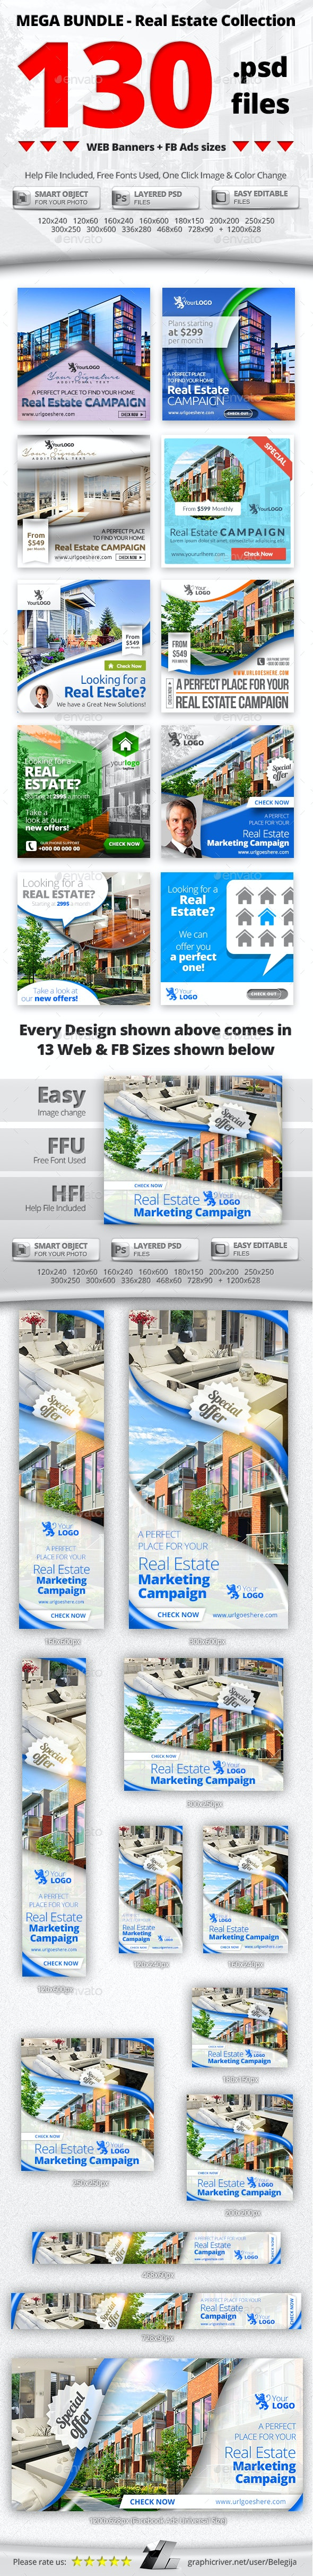 10 in 1 Real Estate Web & FB Banners - Mega Bundle 2 - Banners & Ads Web Elements